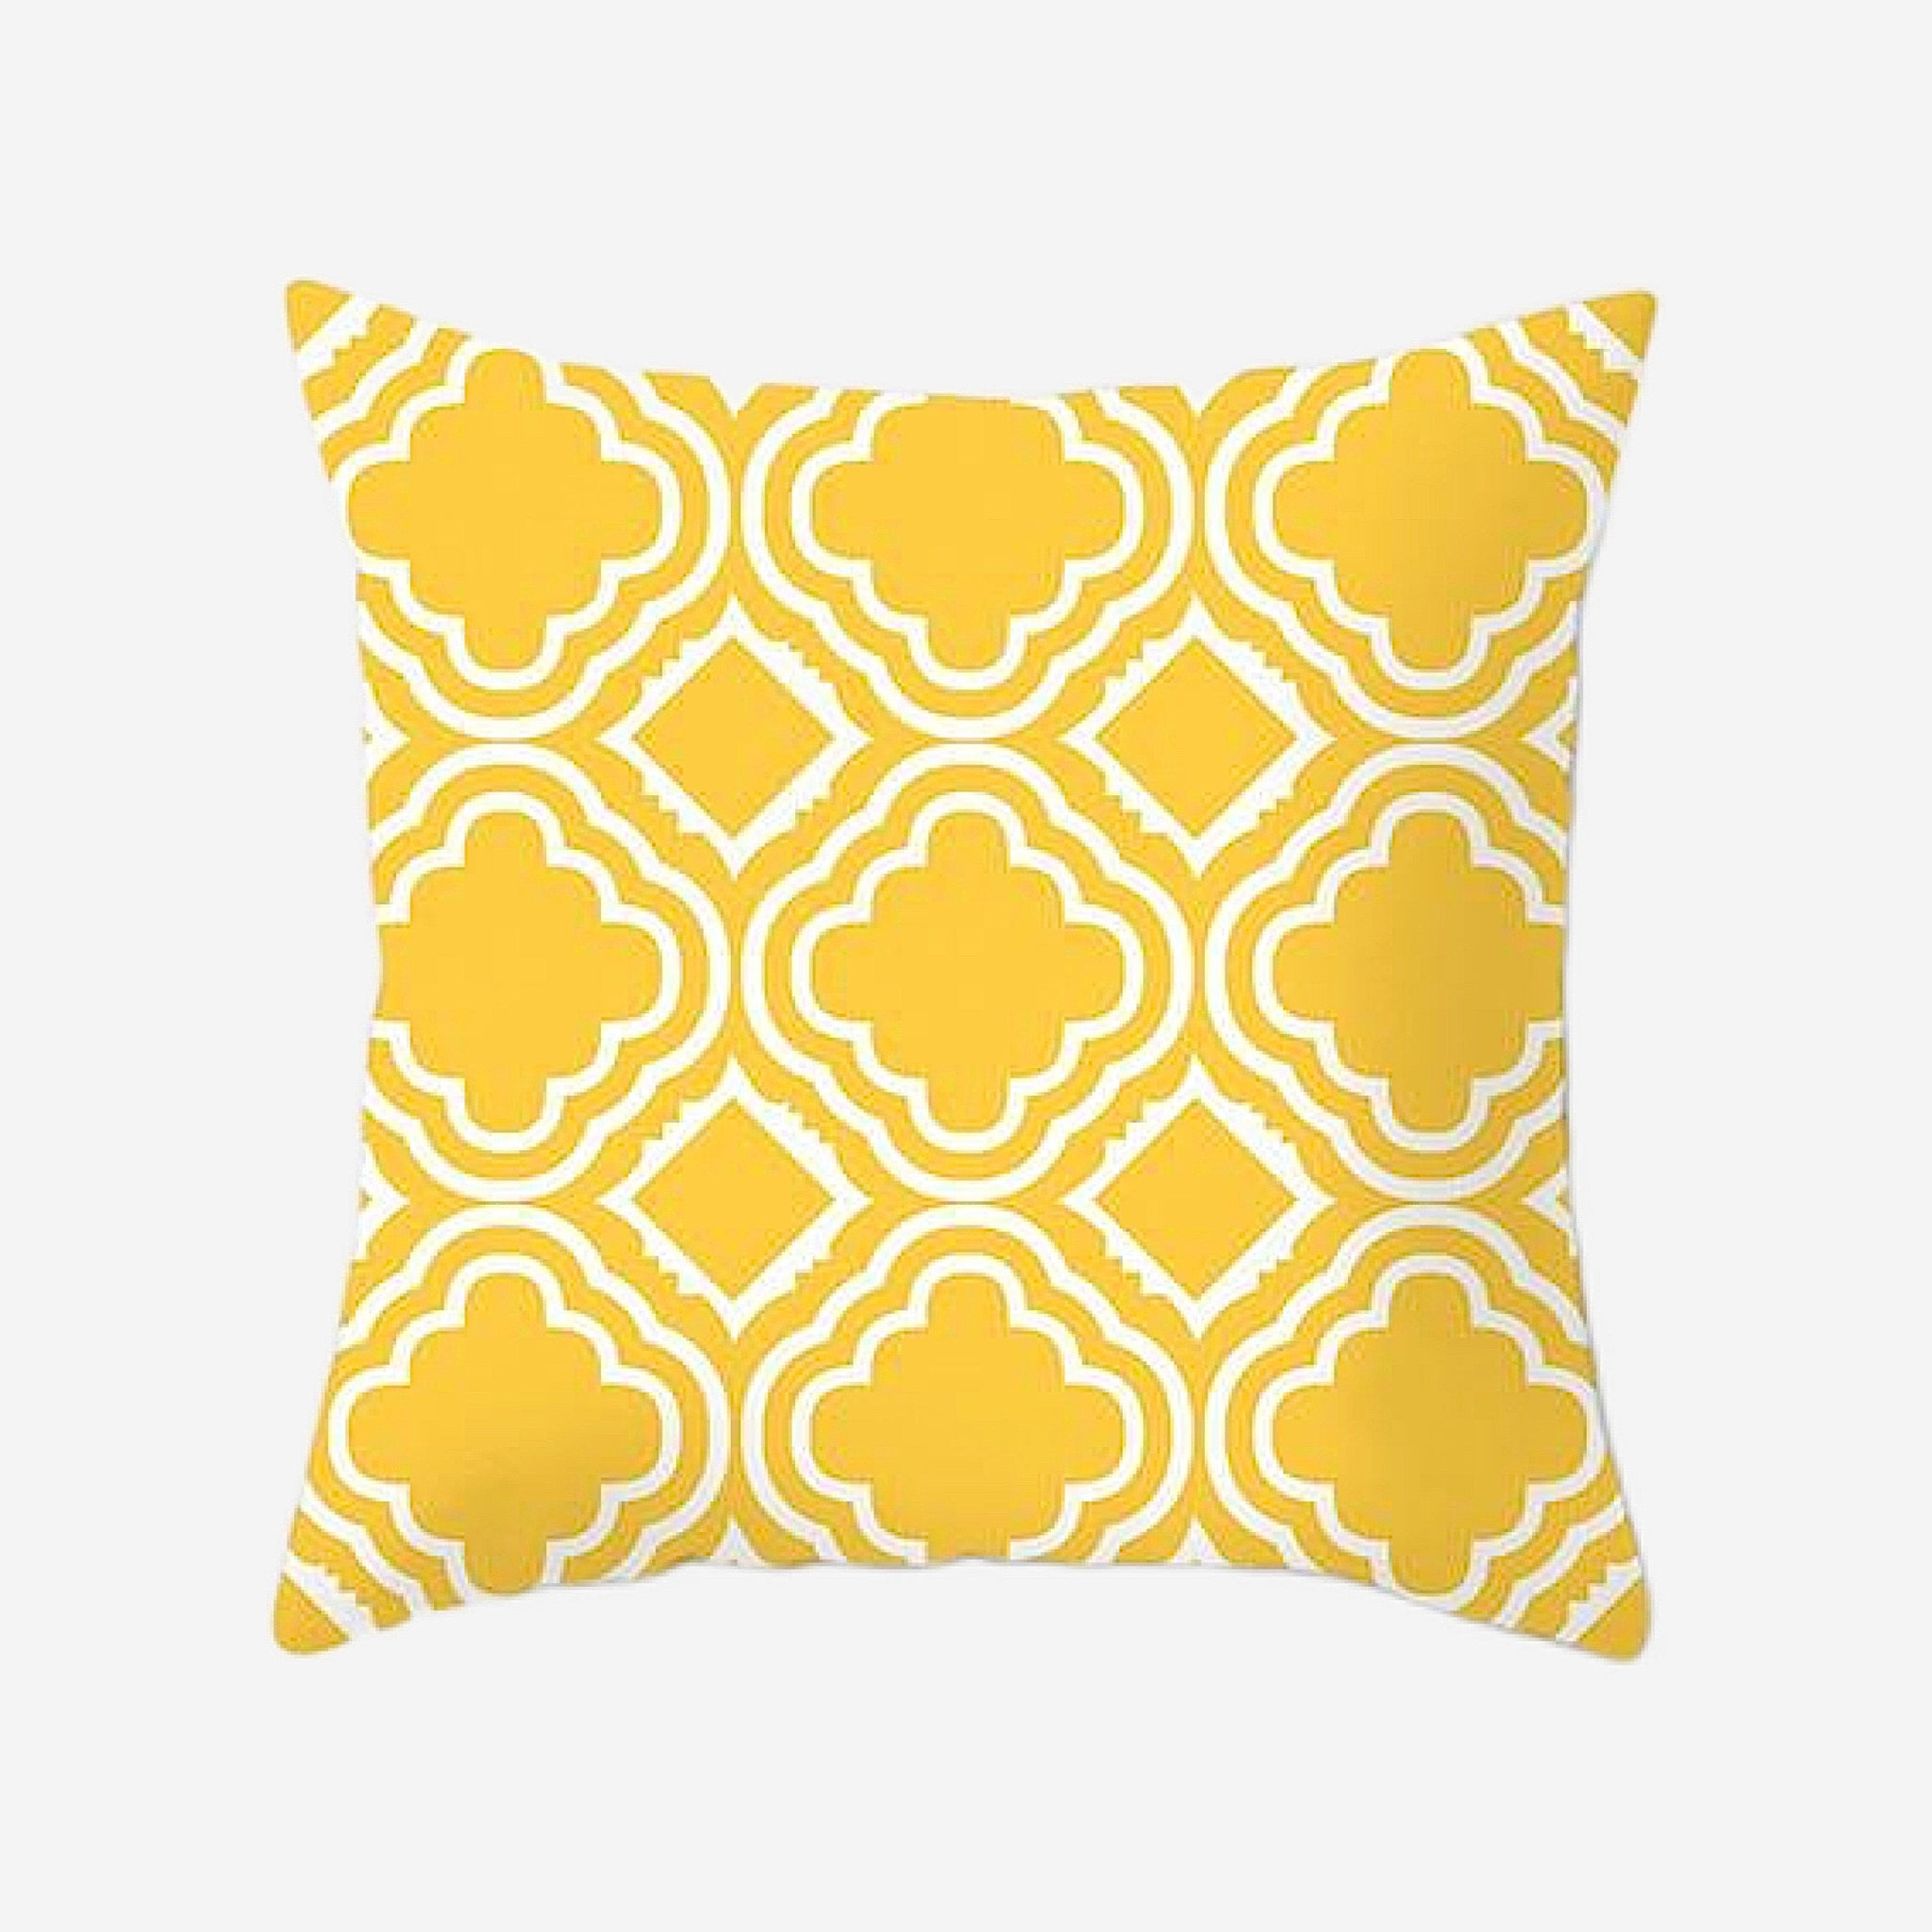 Geometric Cushion Covers Regal Yellow Print Pillow Case For Home Chair Sofa Decoration Pillowcases Cover 45cm*45cm Trend